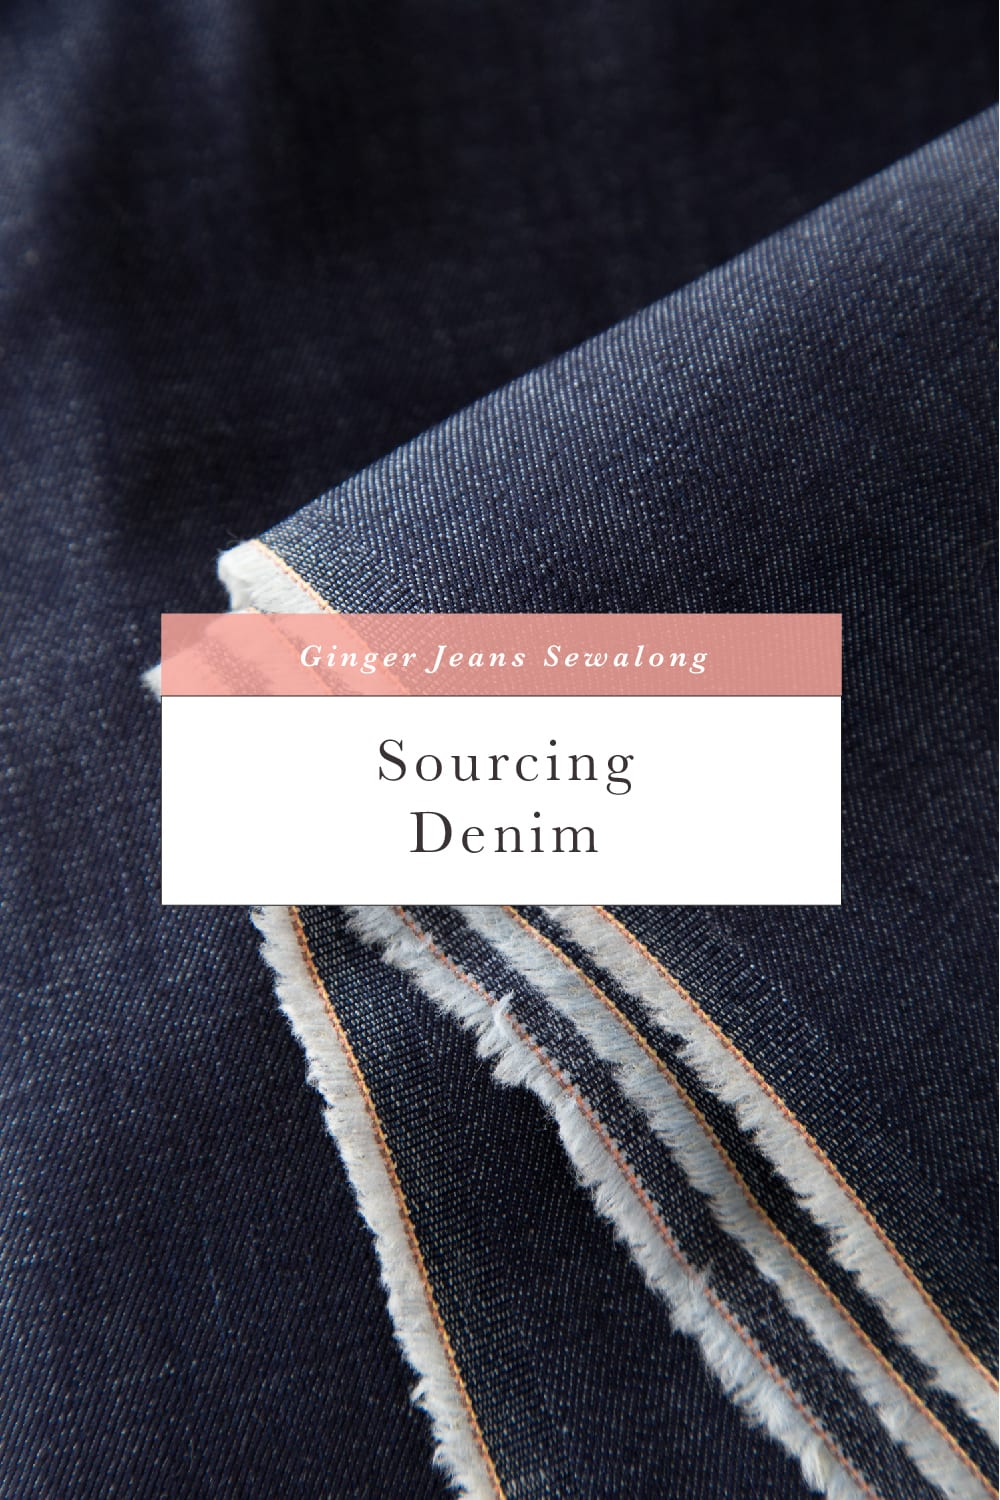 Sourcing denim for making jeans // Ginger Jeans Sewalong // Closet Case Patterns